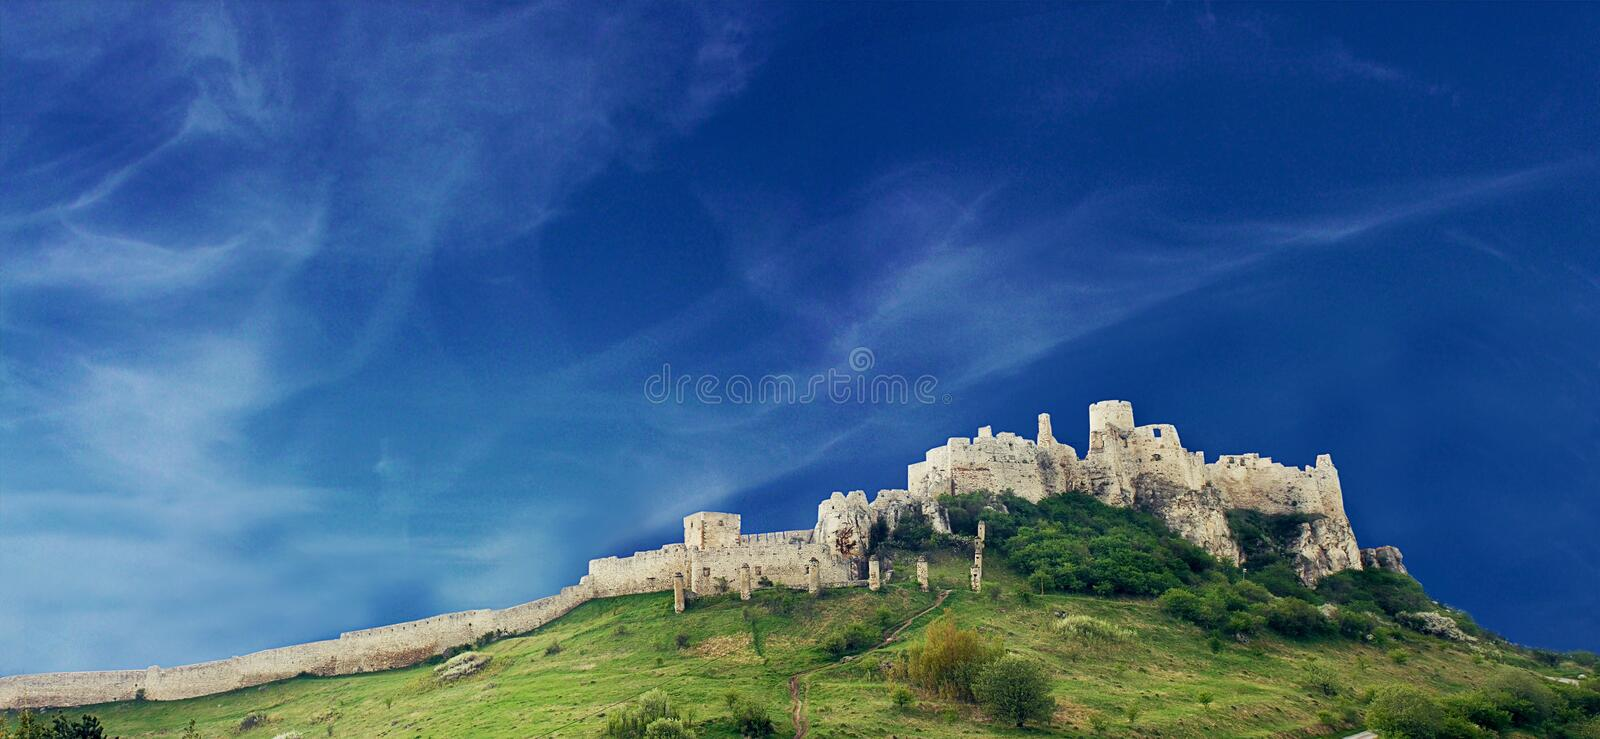 Old Spiss Castle in Slovakia royalty free stock photo